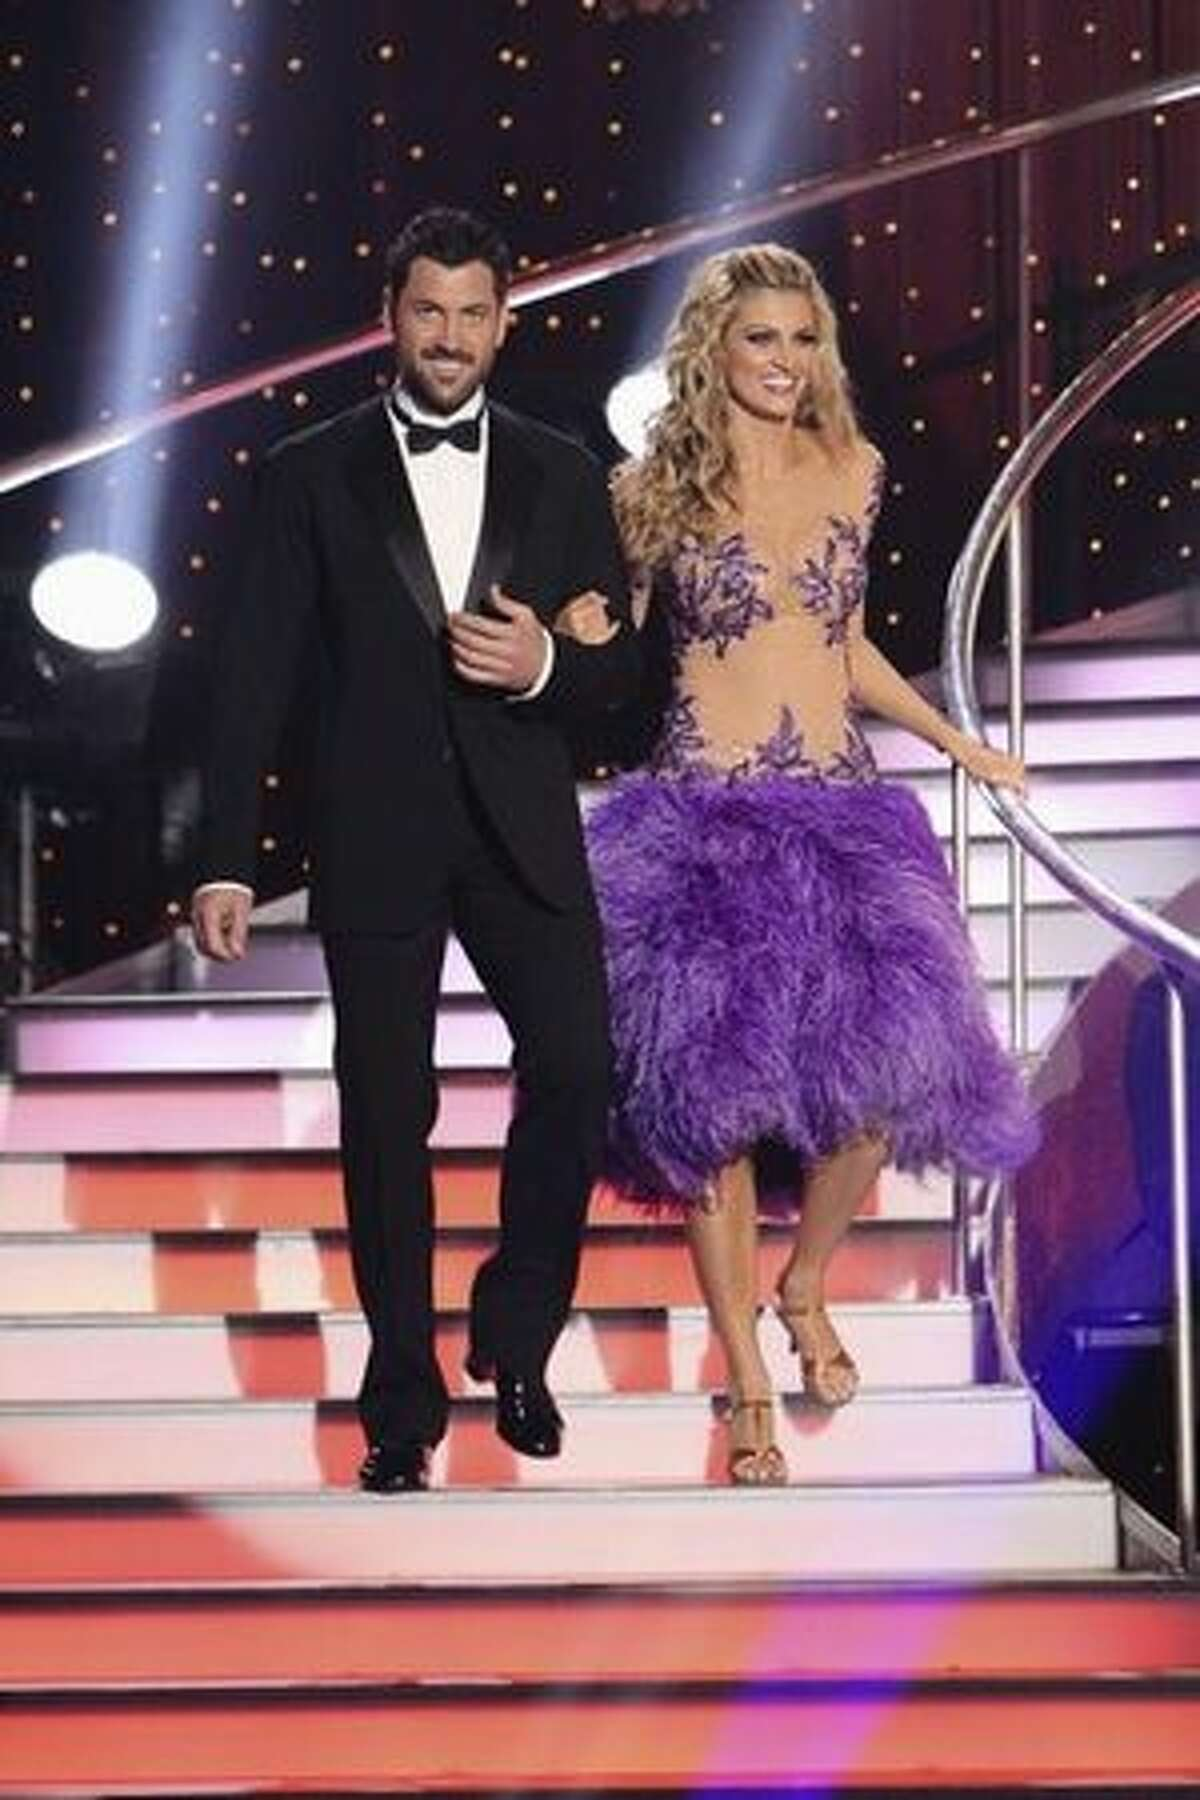 Introductions are in order. Here's sportscaster Erin Andrews and her professional dance partner, Maksim Chmerkovskiy.